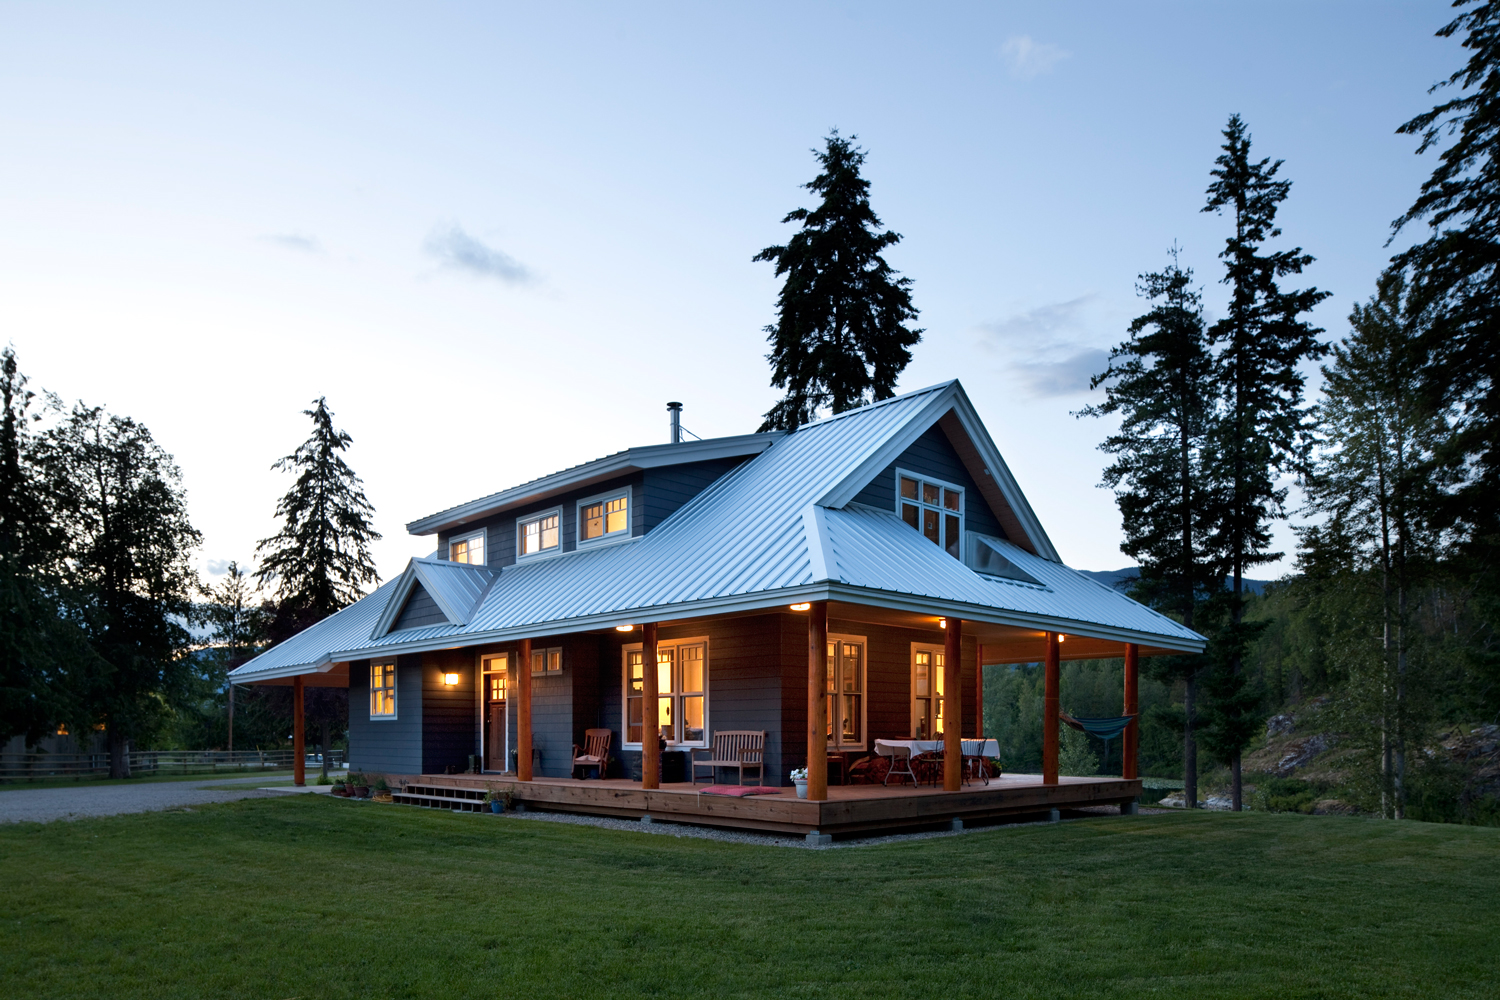 Mountain home revelstoke bc john gower design for Mountain houses